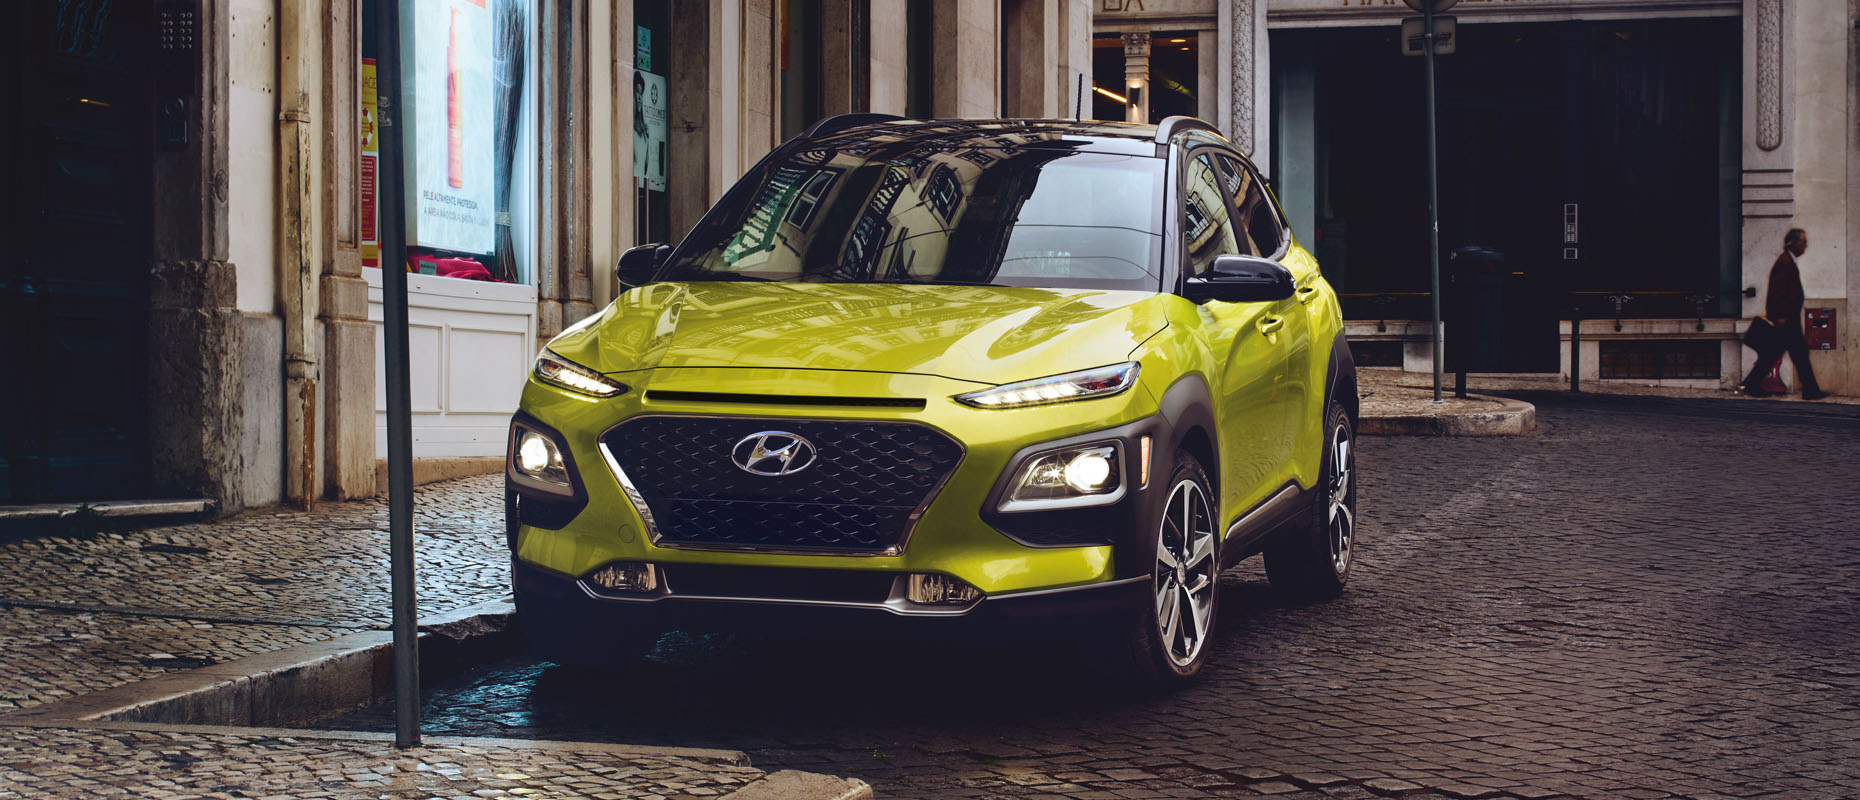 2019 Hyundai Kona Model Header Pathway Hyundai Orleans ON